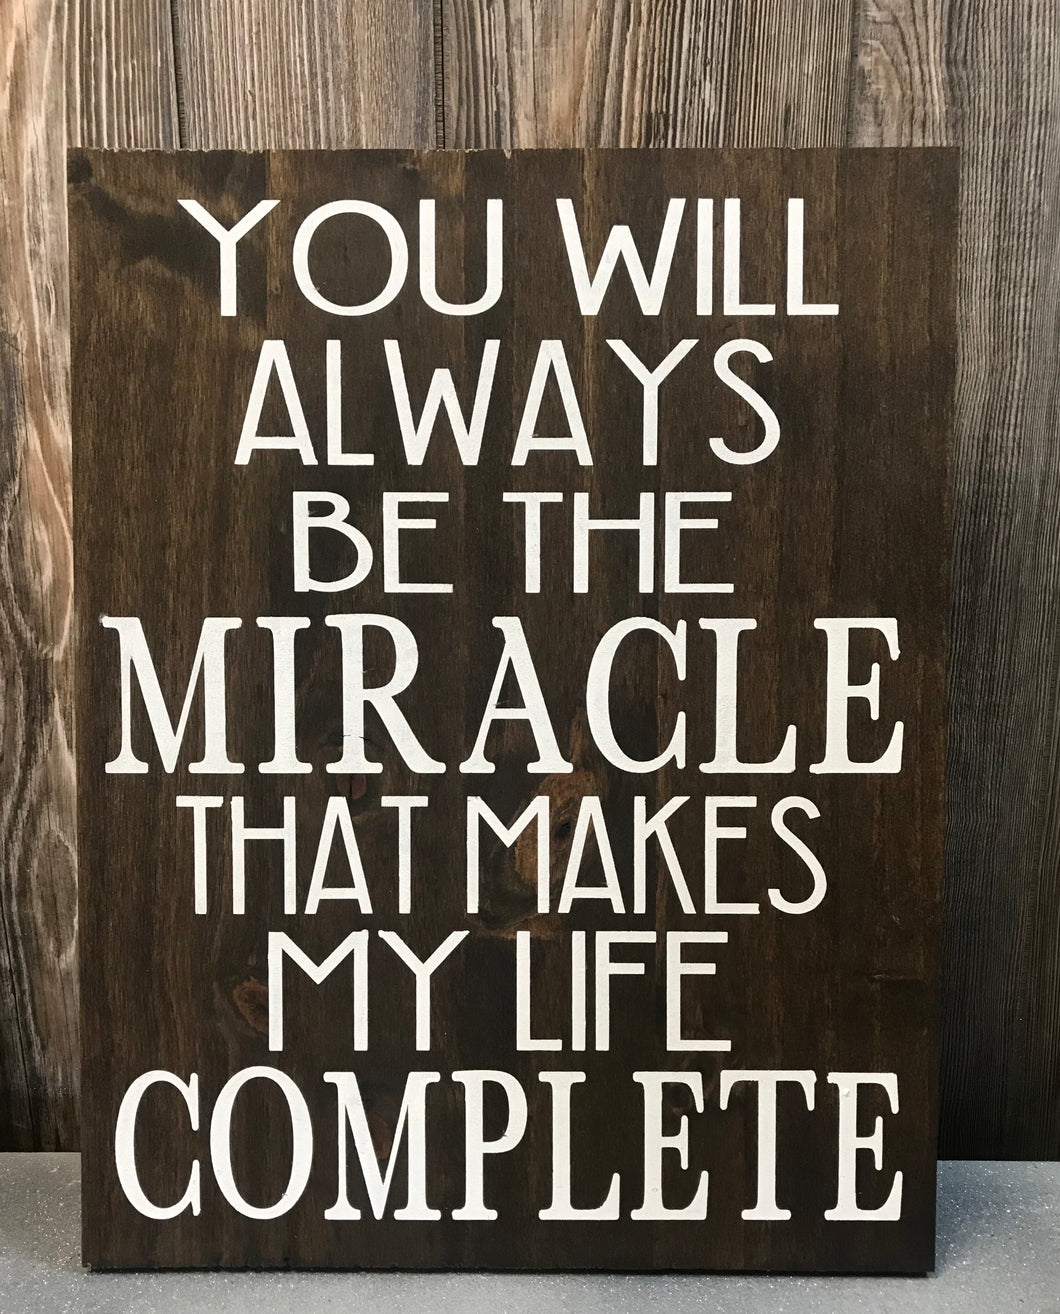 YOU WILL ALWAYS BE THE MIRACLE